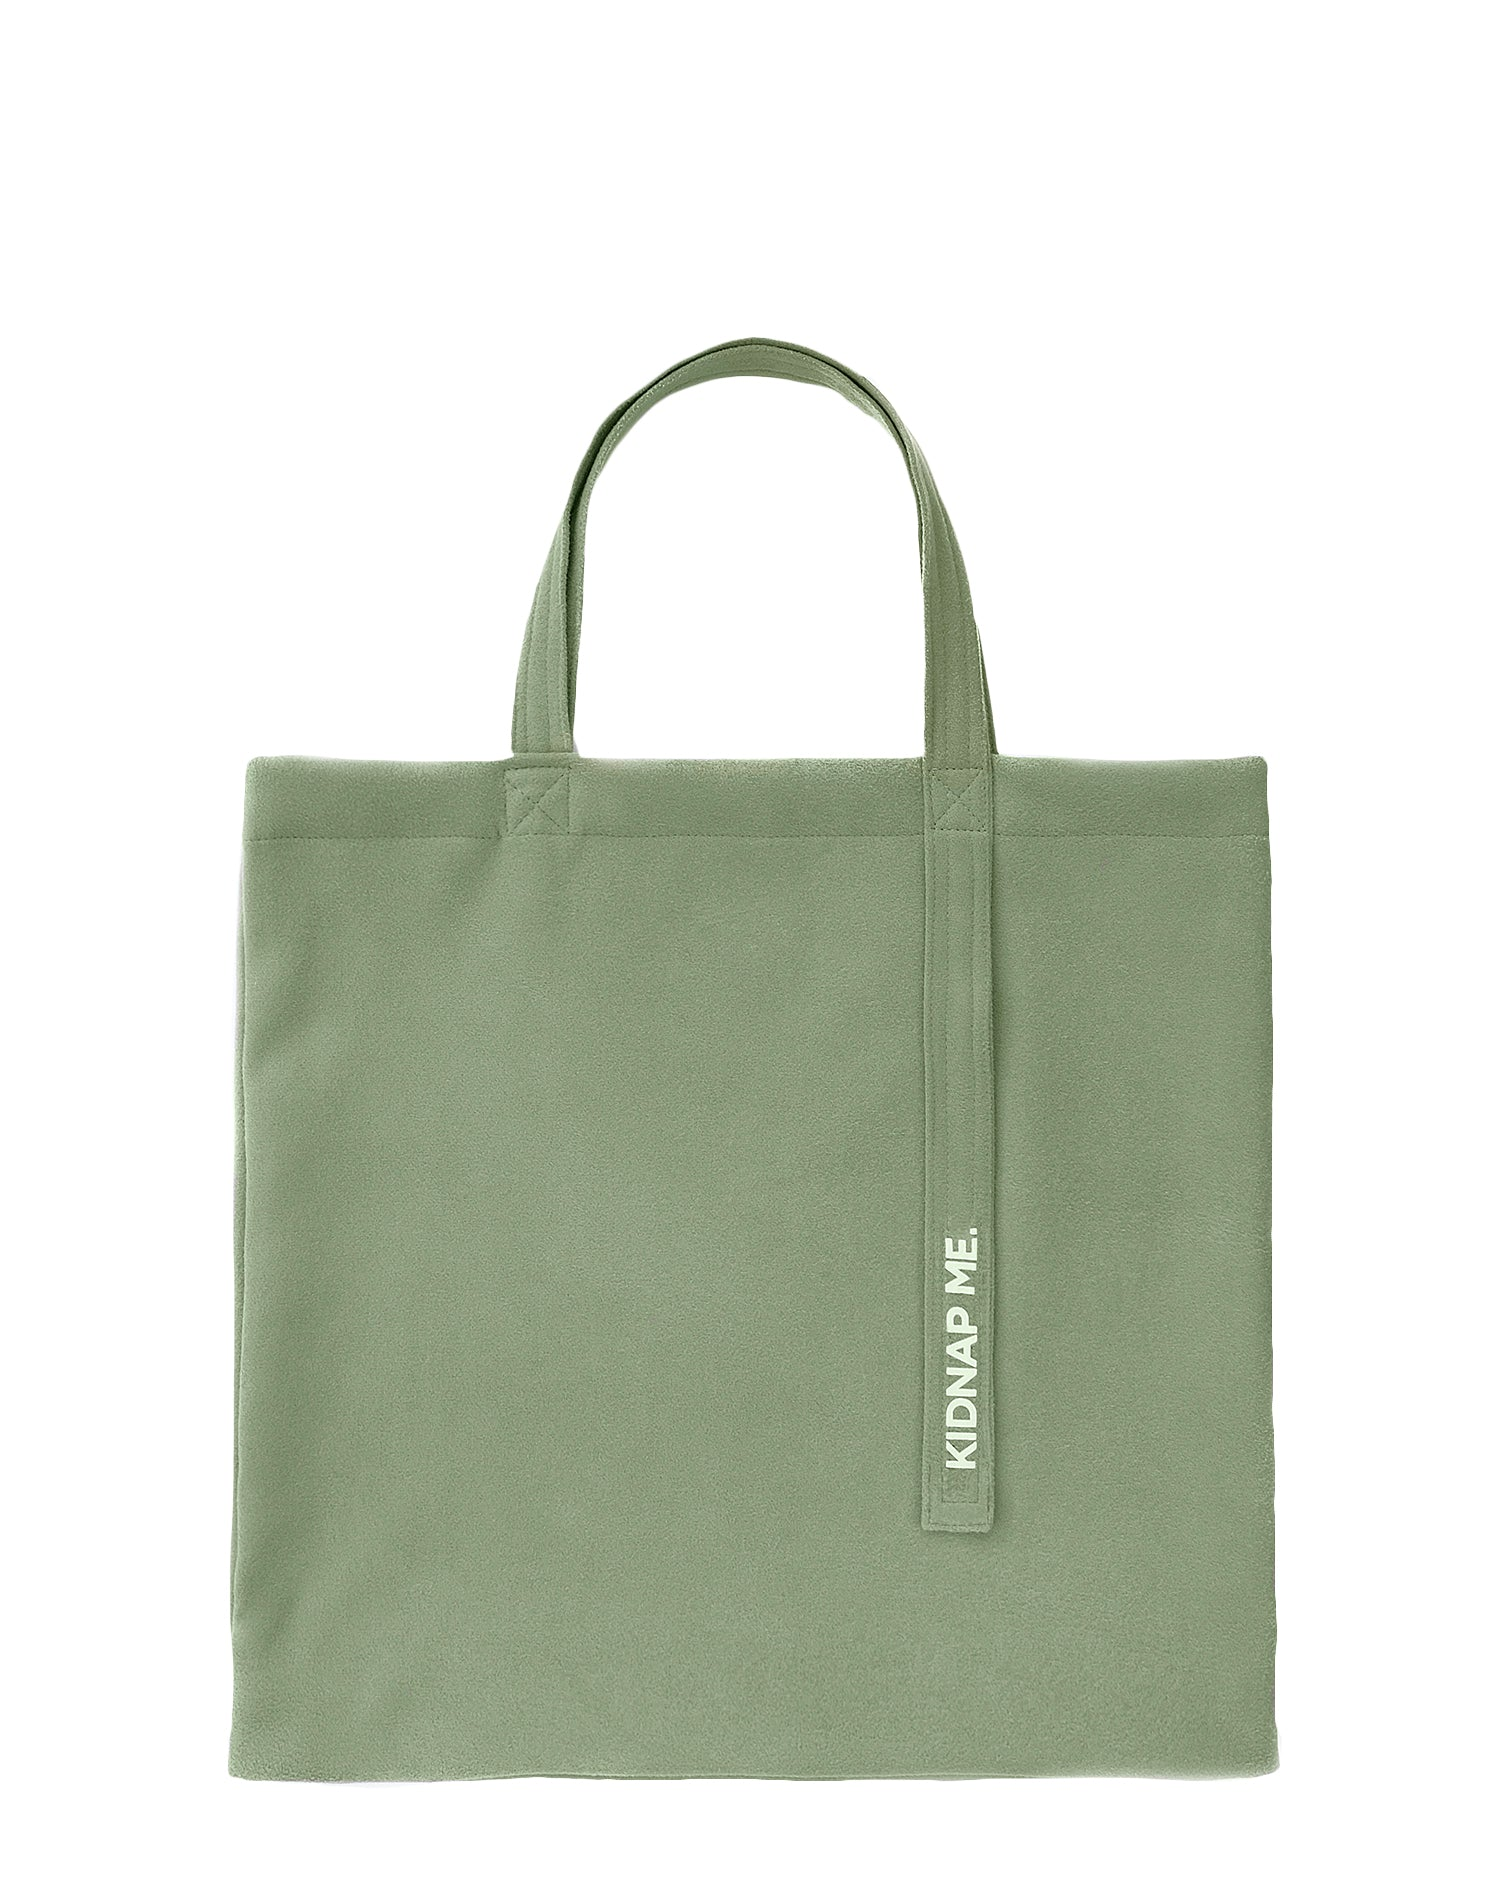 Green Flannel Tote Bag.綠色法蘭絨側背袋